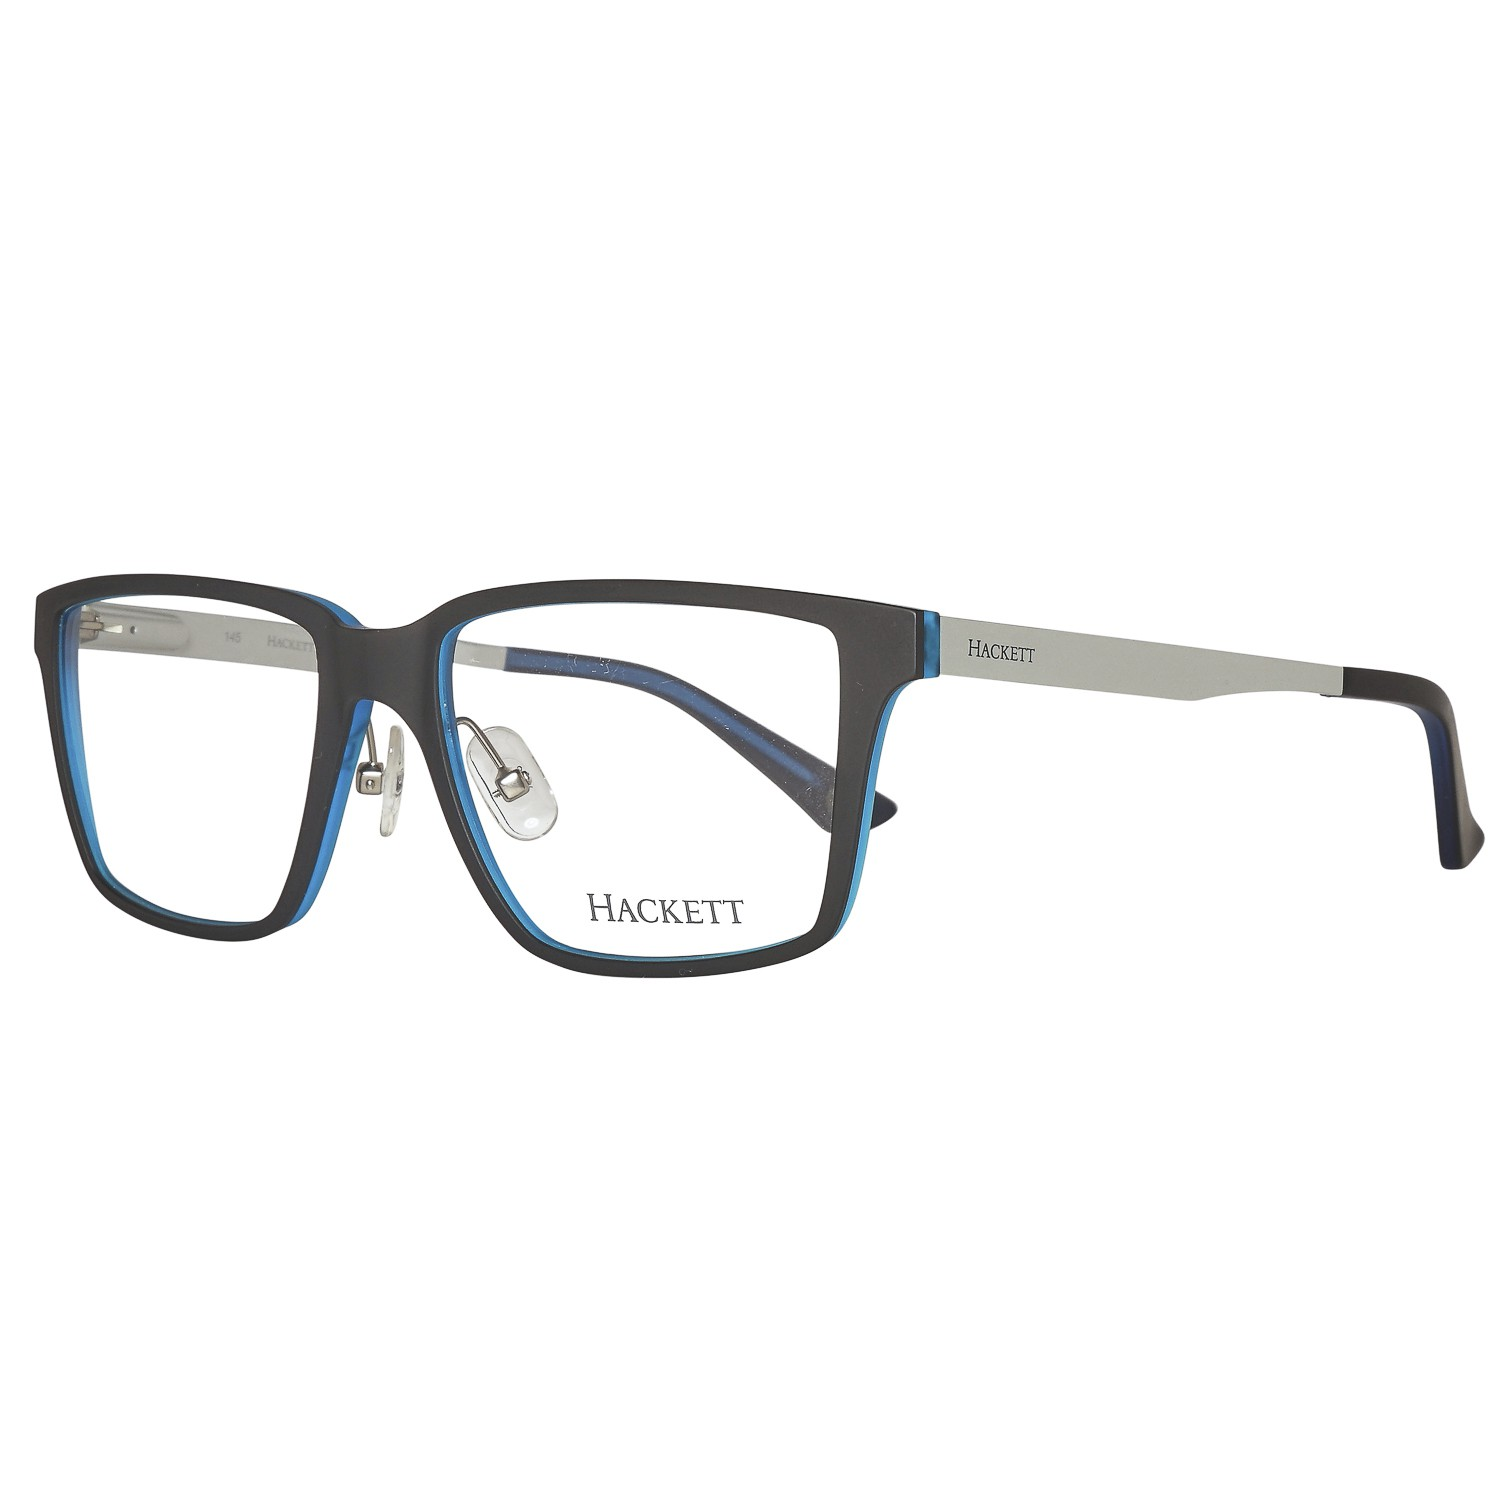 Hackett Optical Frame HEK1154 041 Black